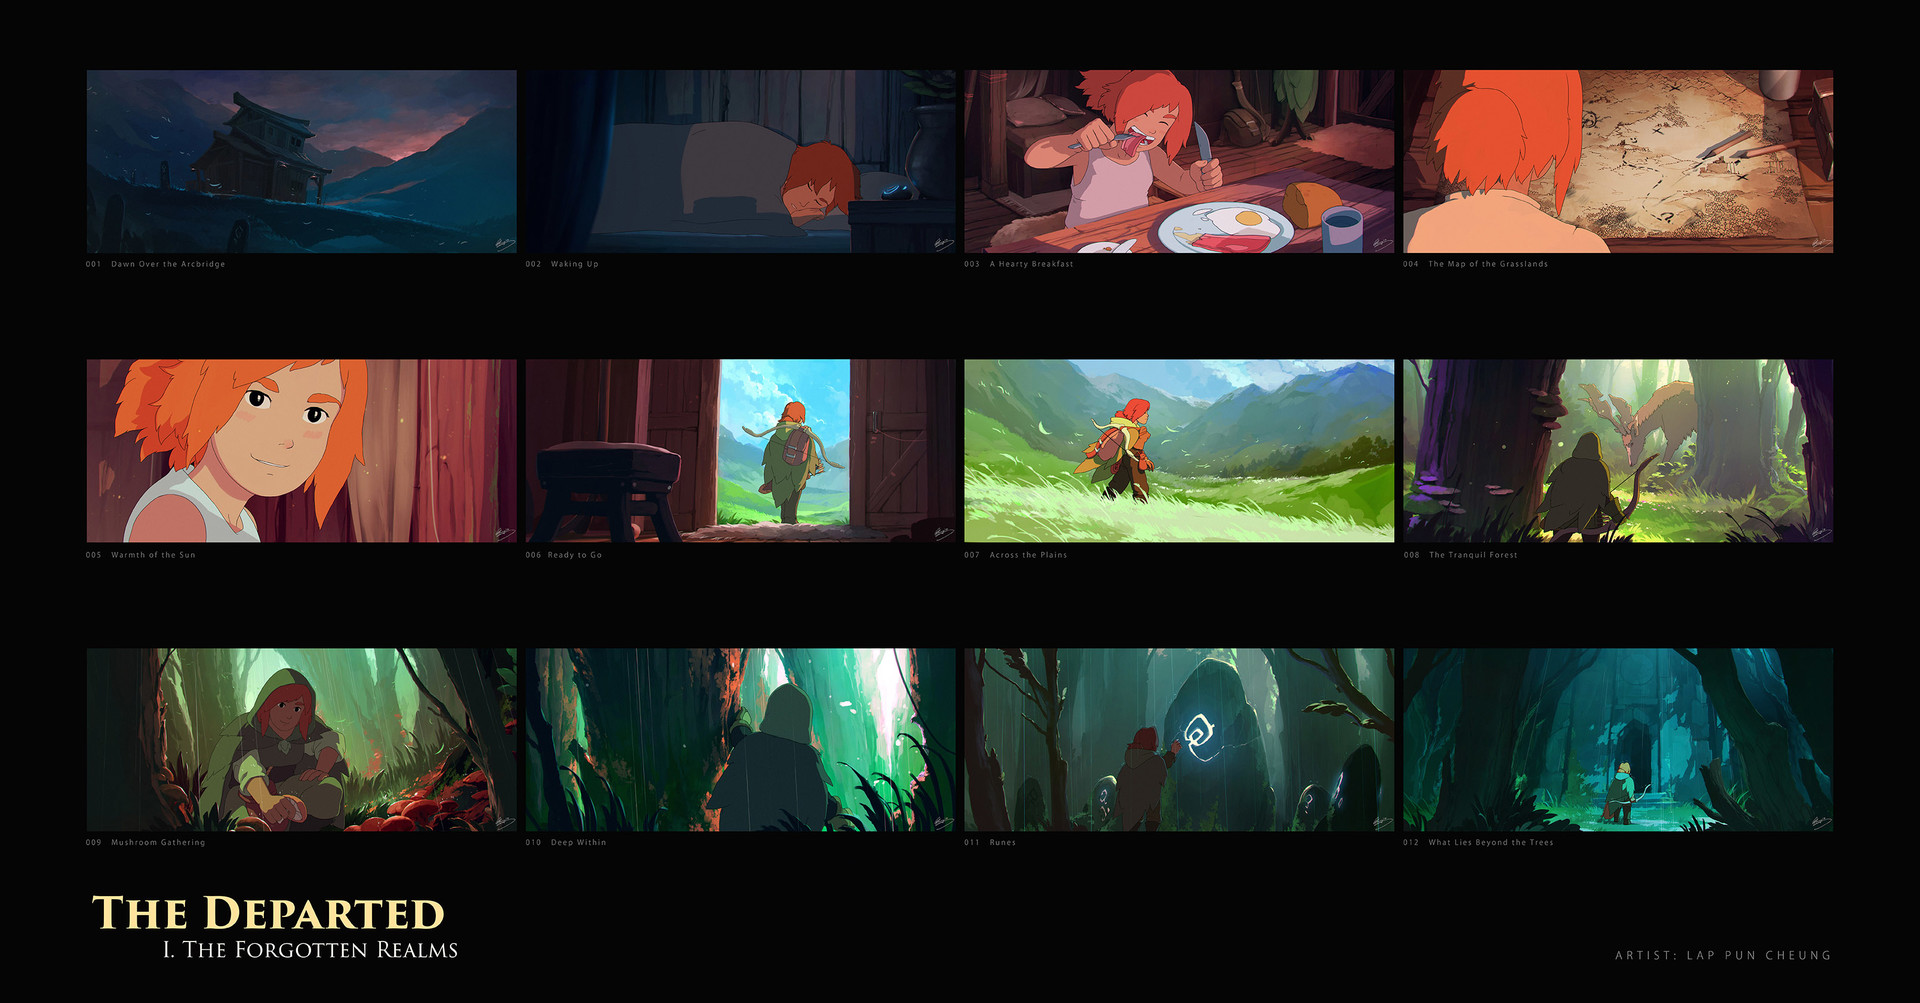 The Departed - Cinematic Keyframes - An Adventure Awaits